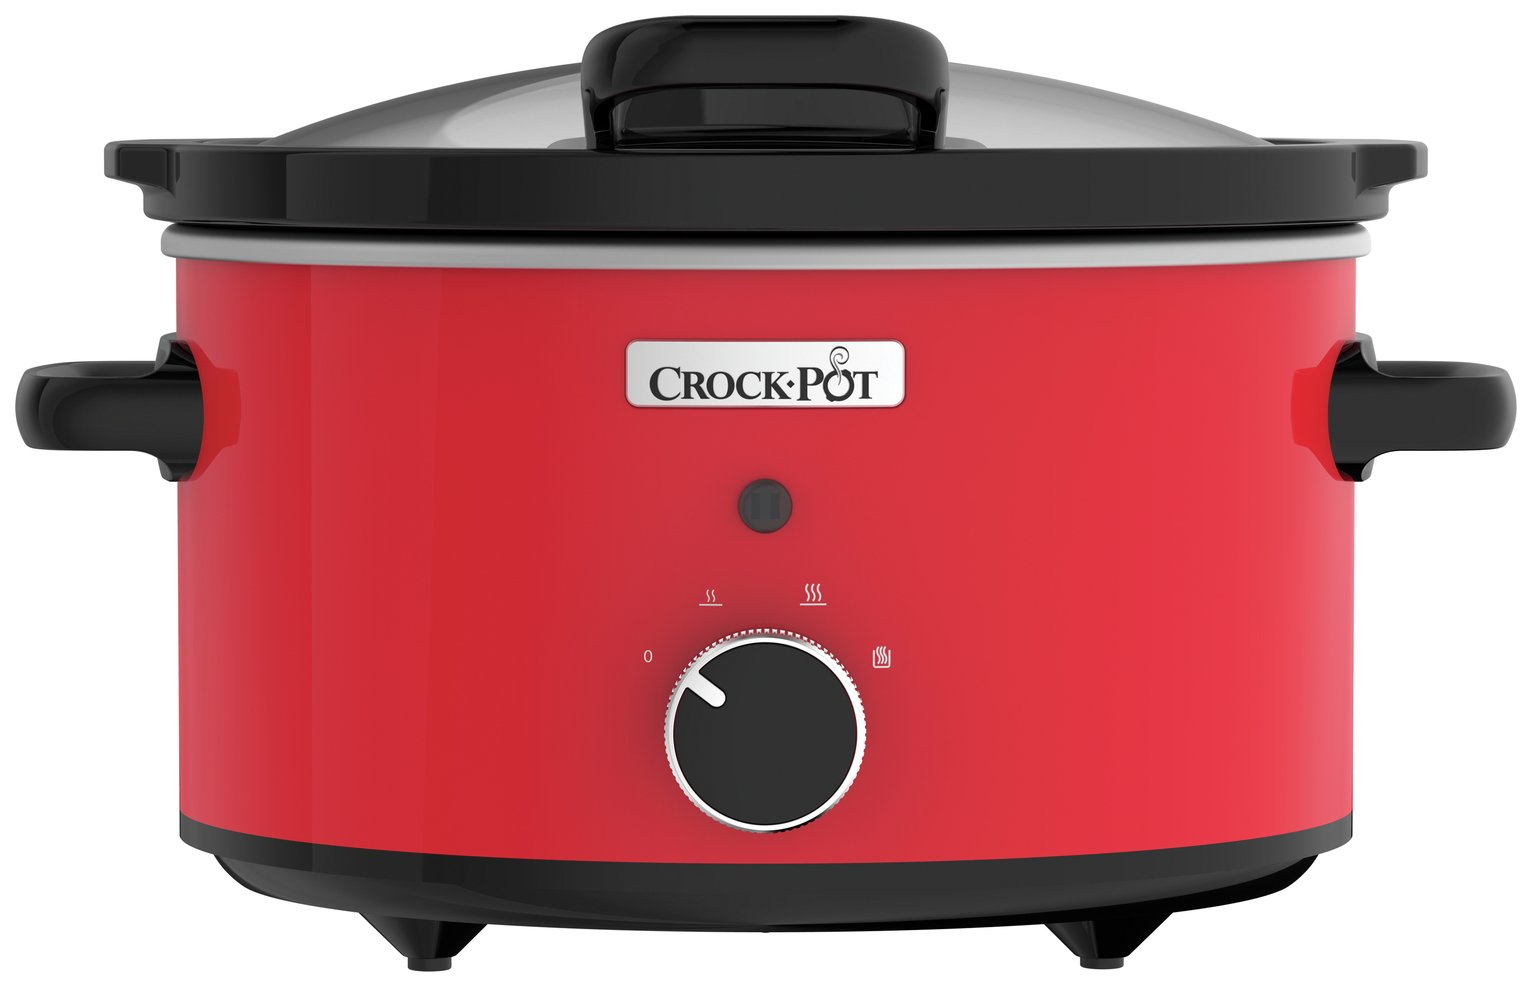 Image of Crock-Pot 3.5L Hinged Lid Slow Cooker - Red